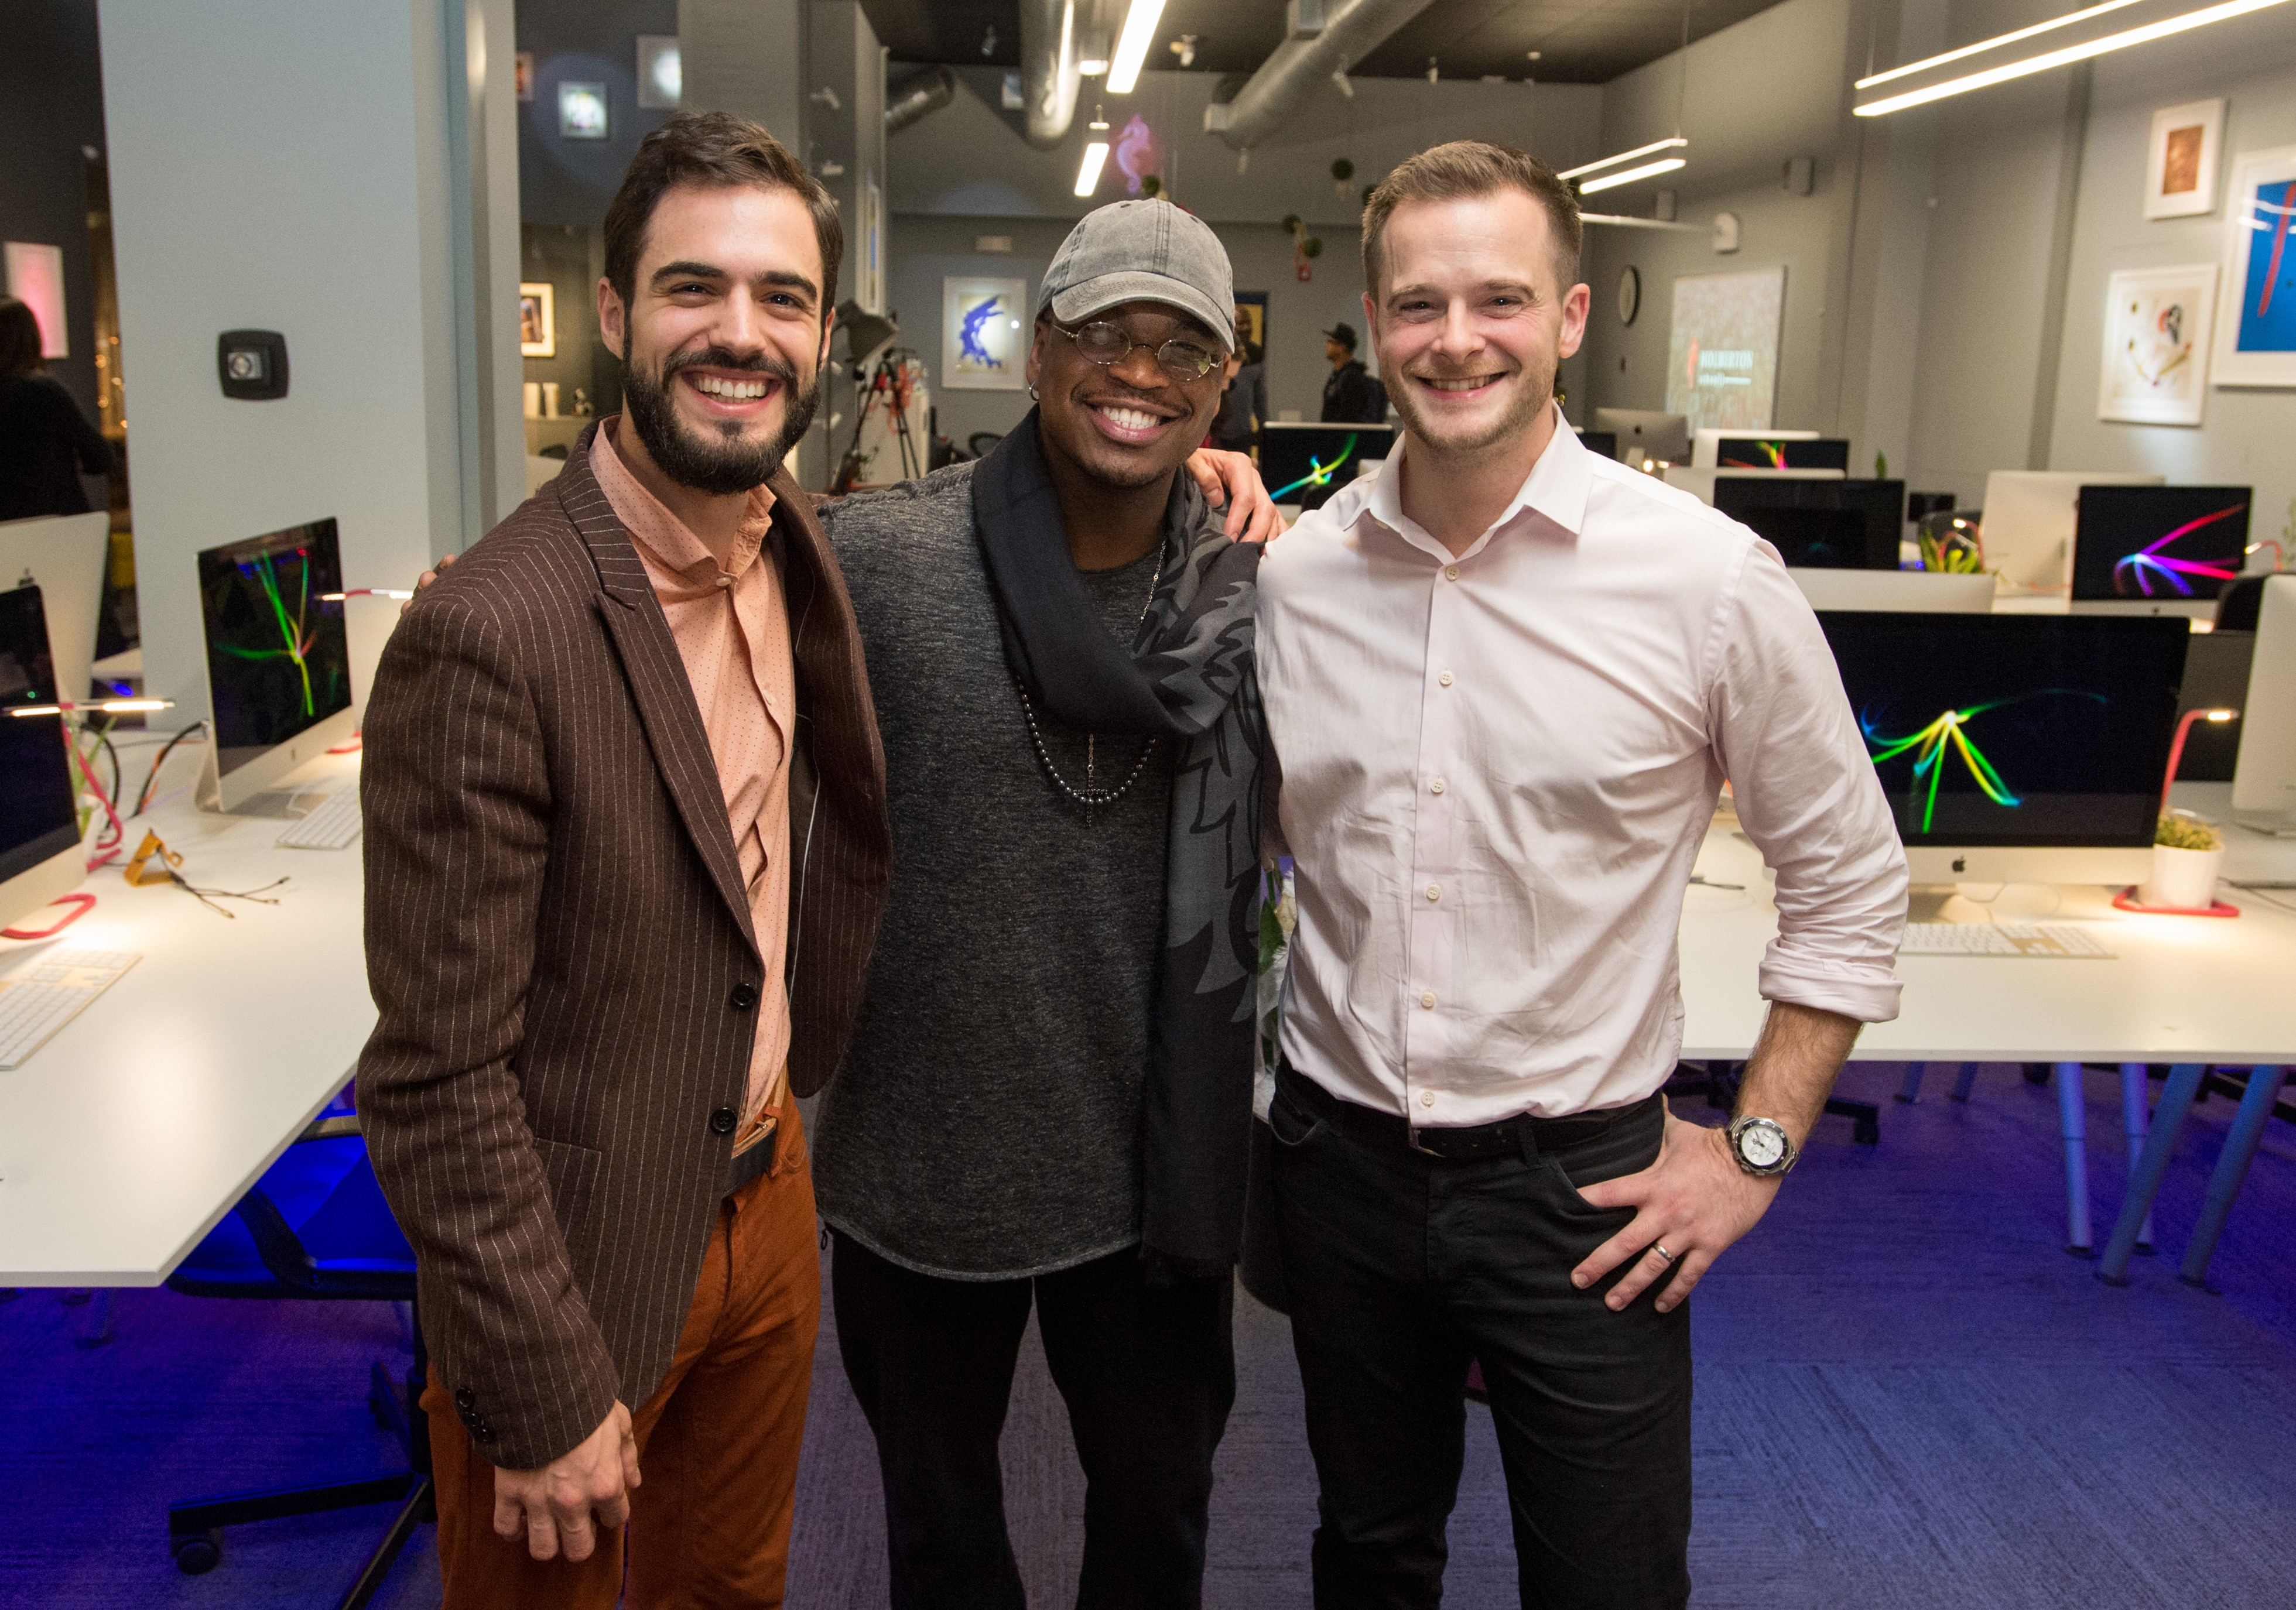 Musician Ne-Yo flanked by Holberton School founders Sylvain Kalache (l.) and Julien Barbier.